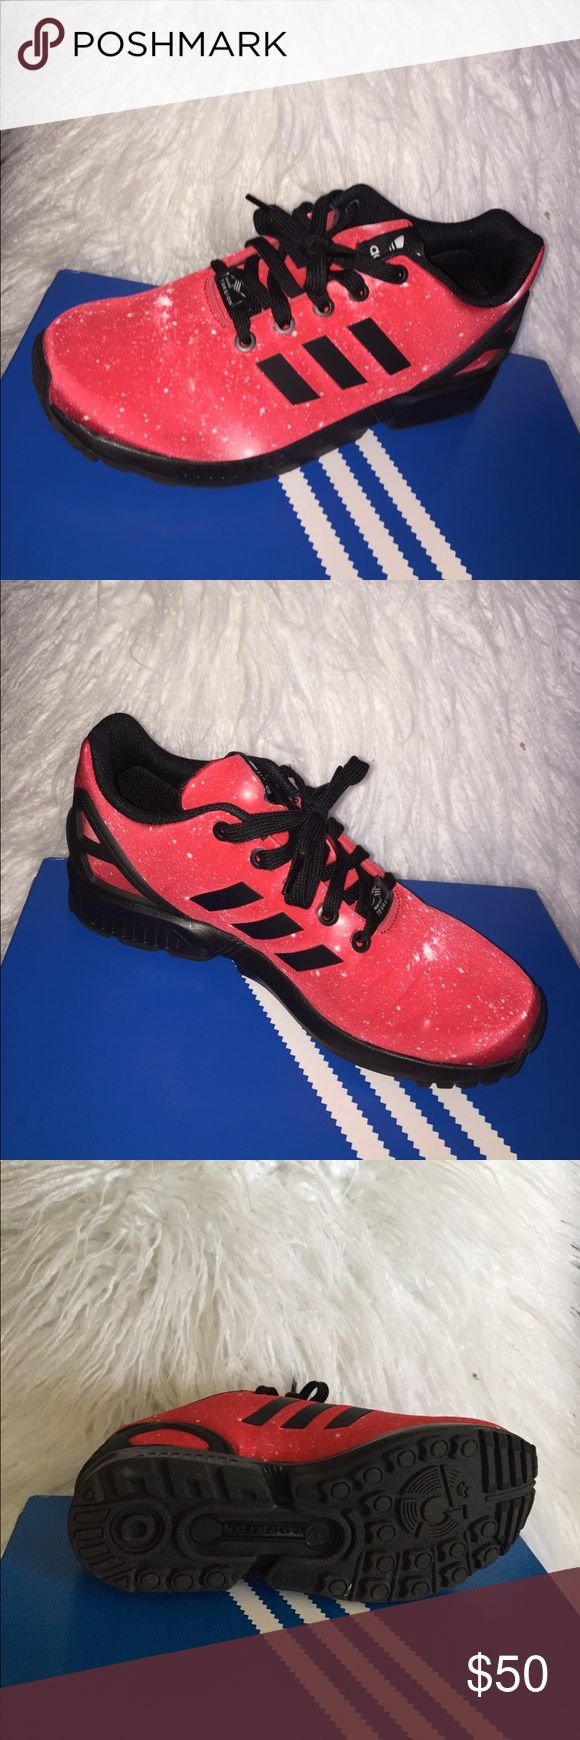 Adidas Originals Sneakers ZX FLUX K, red and black, worn once, comes with original box, technically a kids size 6 but fits 7.5 in women's, OBO adidas Shoes Sneakers